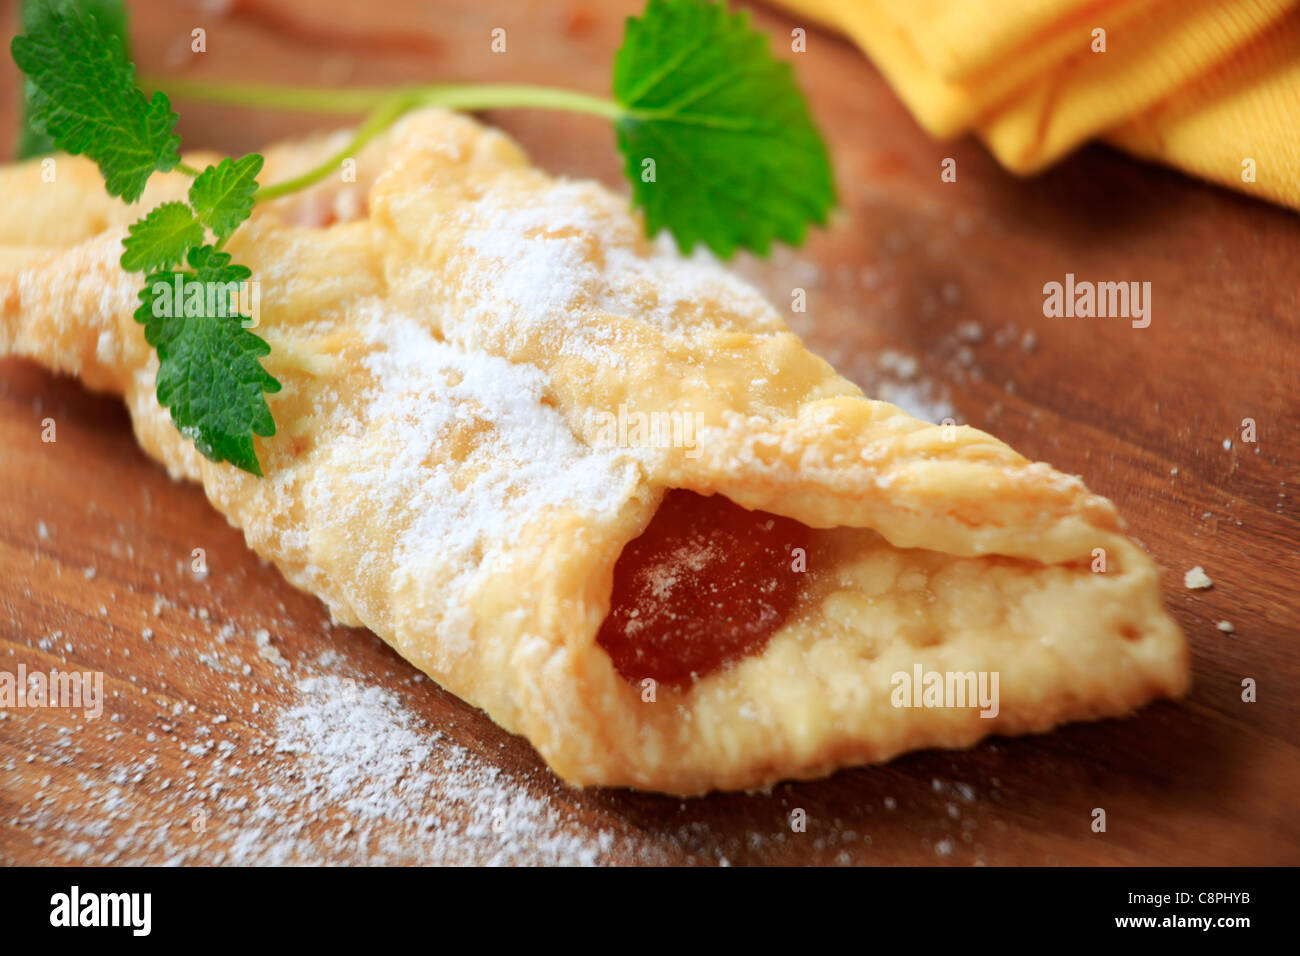 Sweet pastry turnover filled with jam - closeup - Stock Image